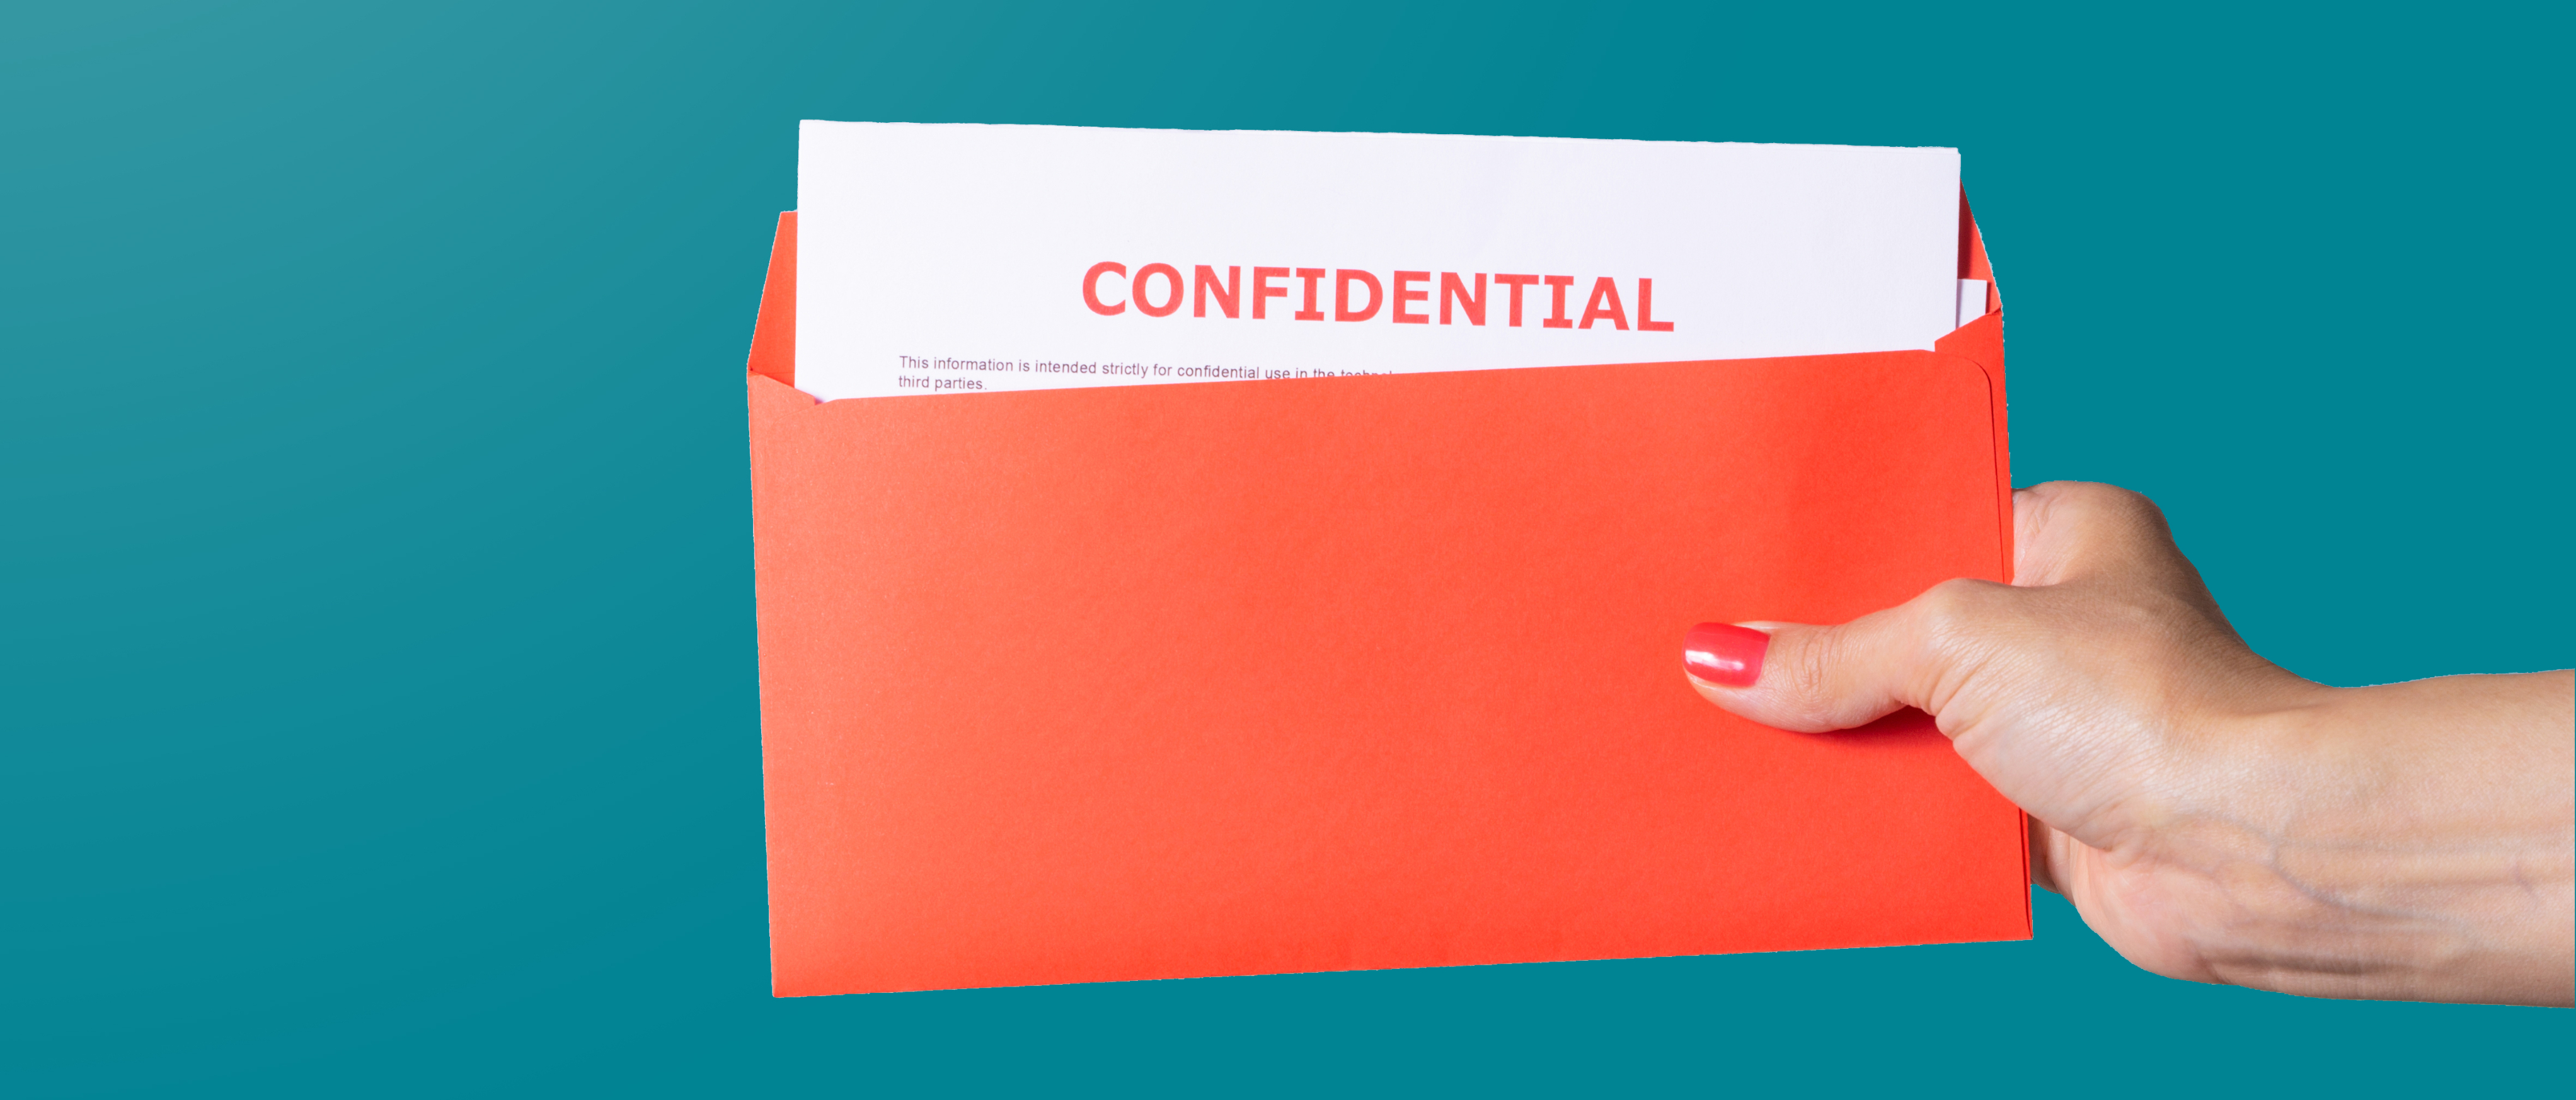 a hand from outside of the frame holding a coral coloured envelop with white documents inside with the words confidential in red written at the top, all against a solid teal background